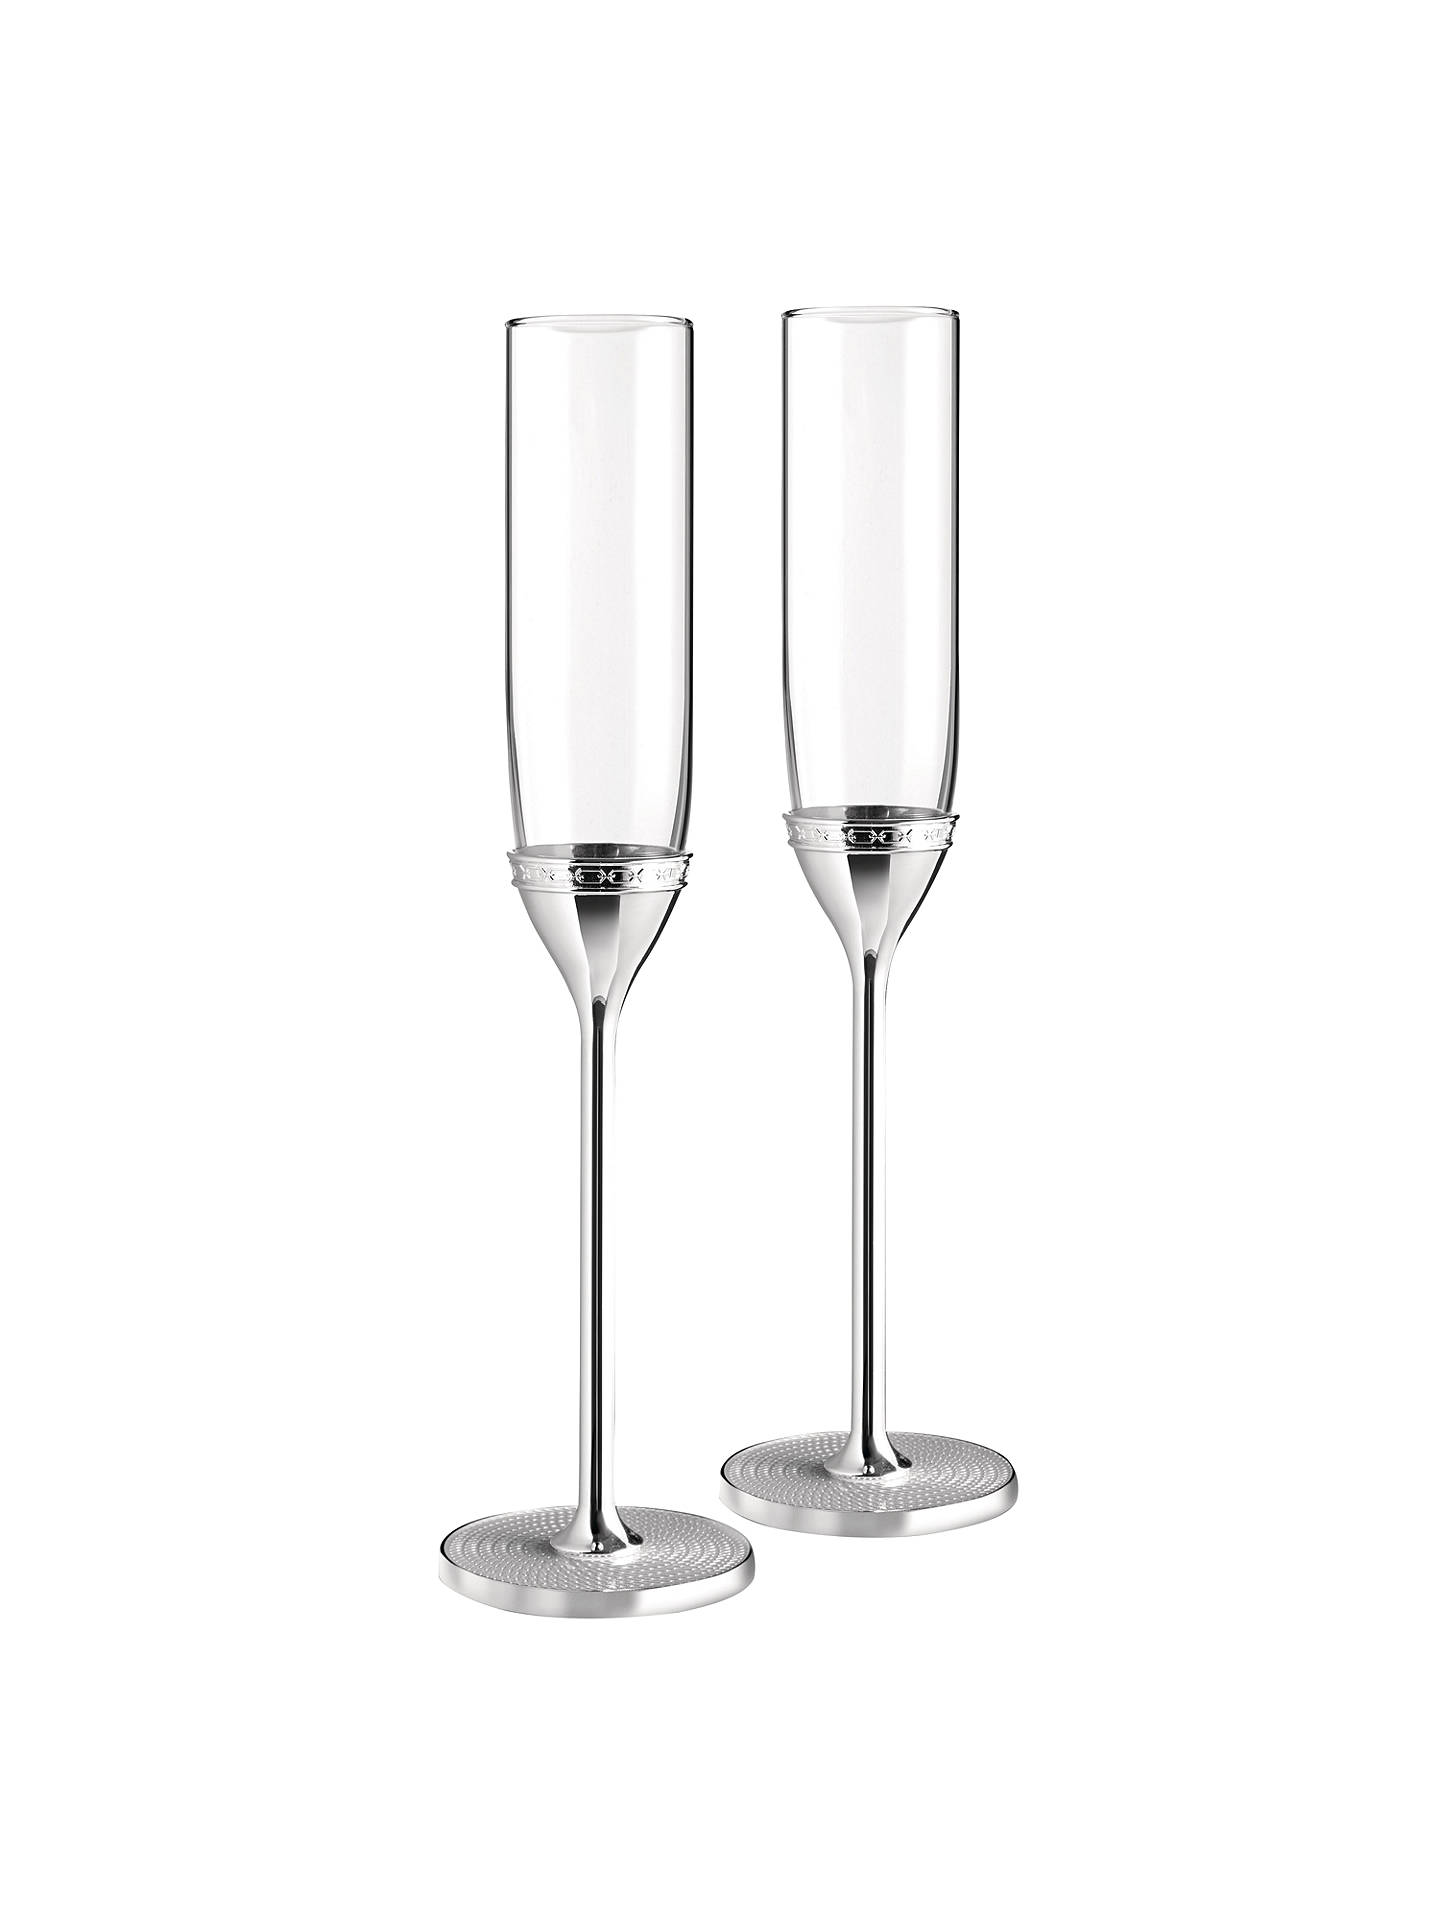 Buy Vera Wang for Wedgwood 'With Love' Silver Plated Flutes, Set of 2, Clear Online at johnlewis.com